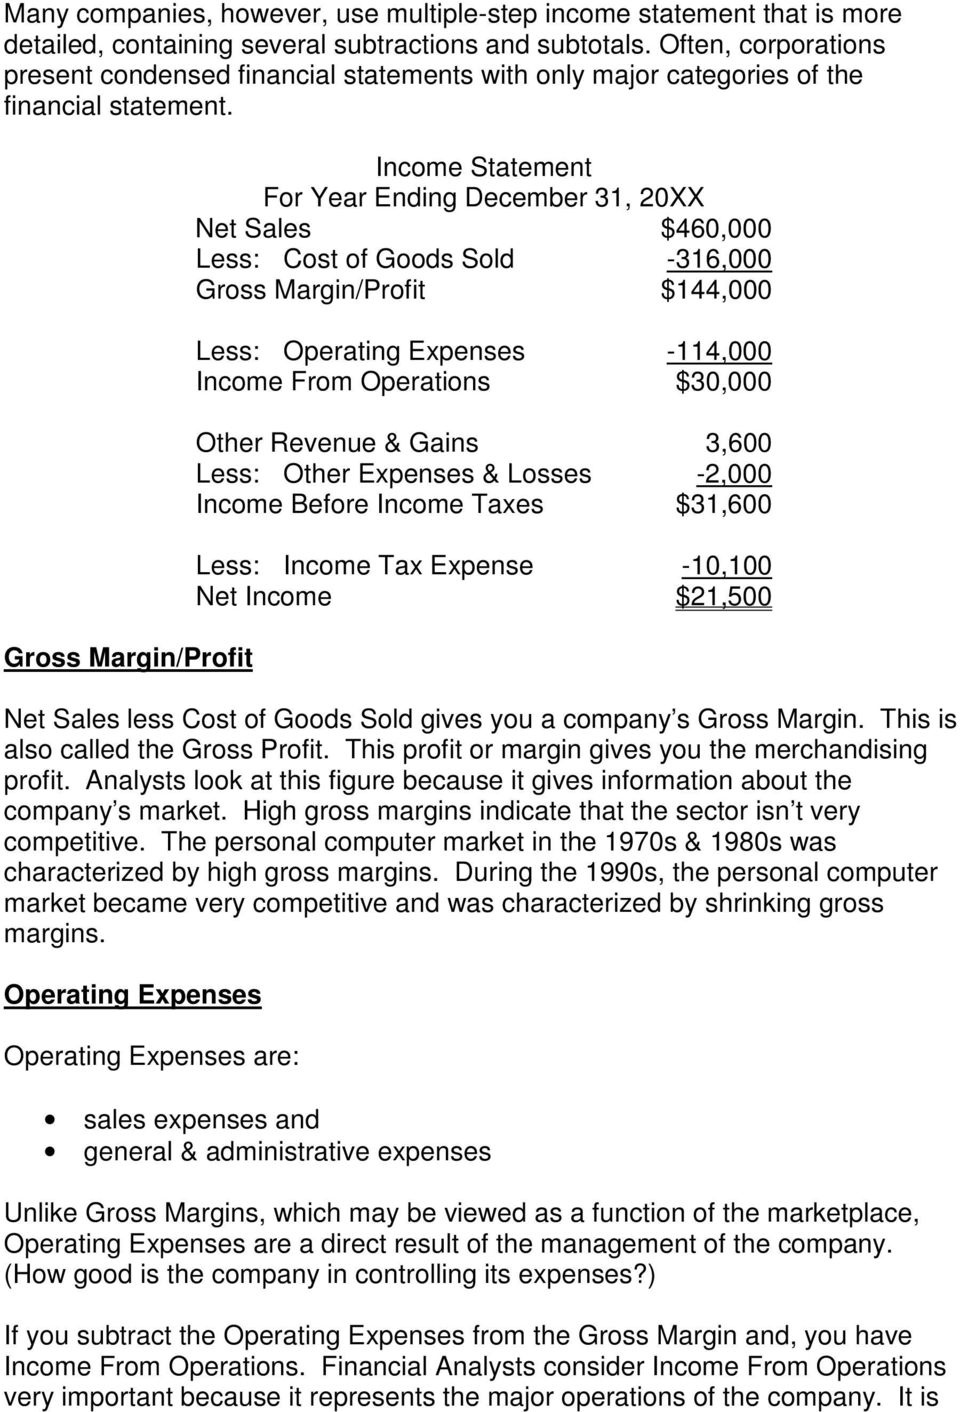 Gross Margin/Profit Income Statement For Year Ending December 31, 20XX Net Sales $460,000 Less: Cost of Goods Sold -316,000 Gross Margin/Profit $144,000 Less: Operating Expenses -114,000 Income From